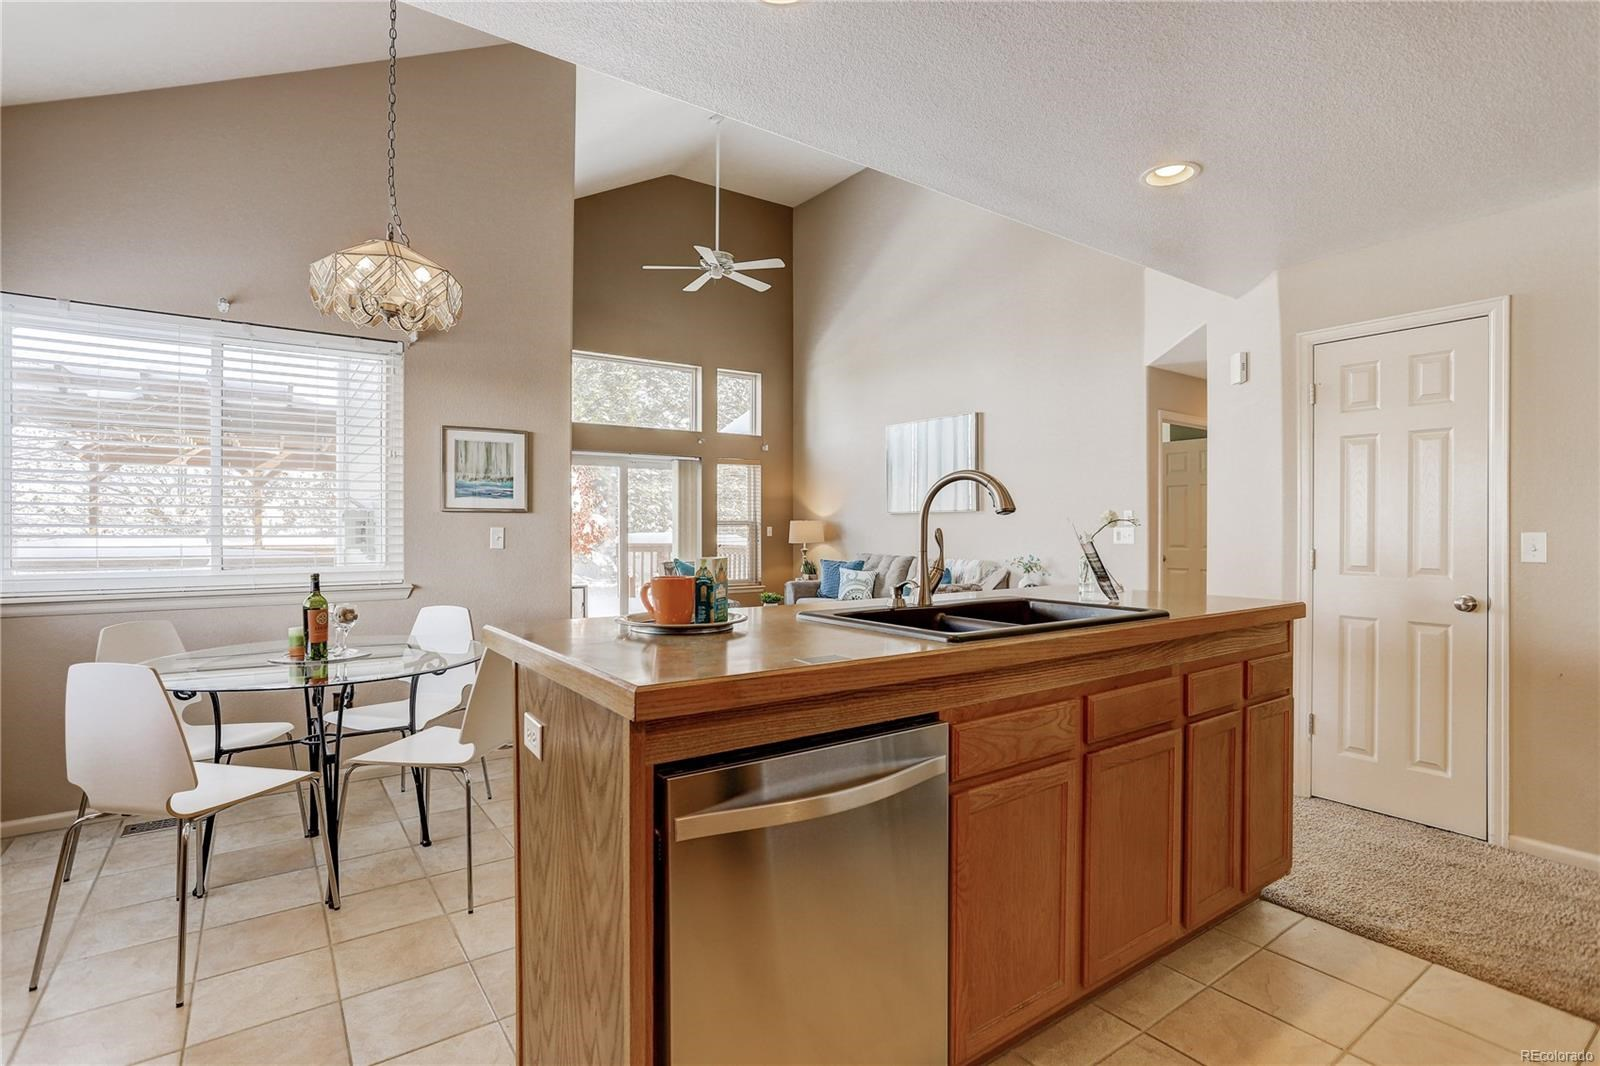 MLS# 8327774 - 10 - 806 W 127th Court, Westminster, CO 80234